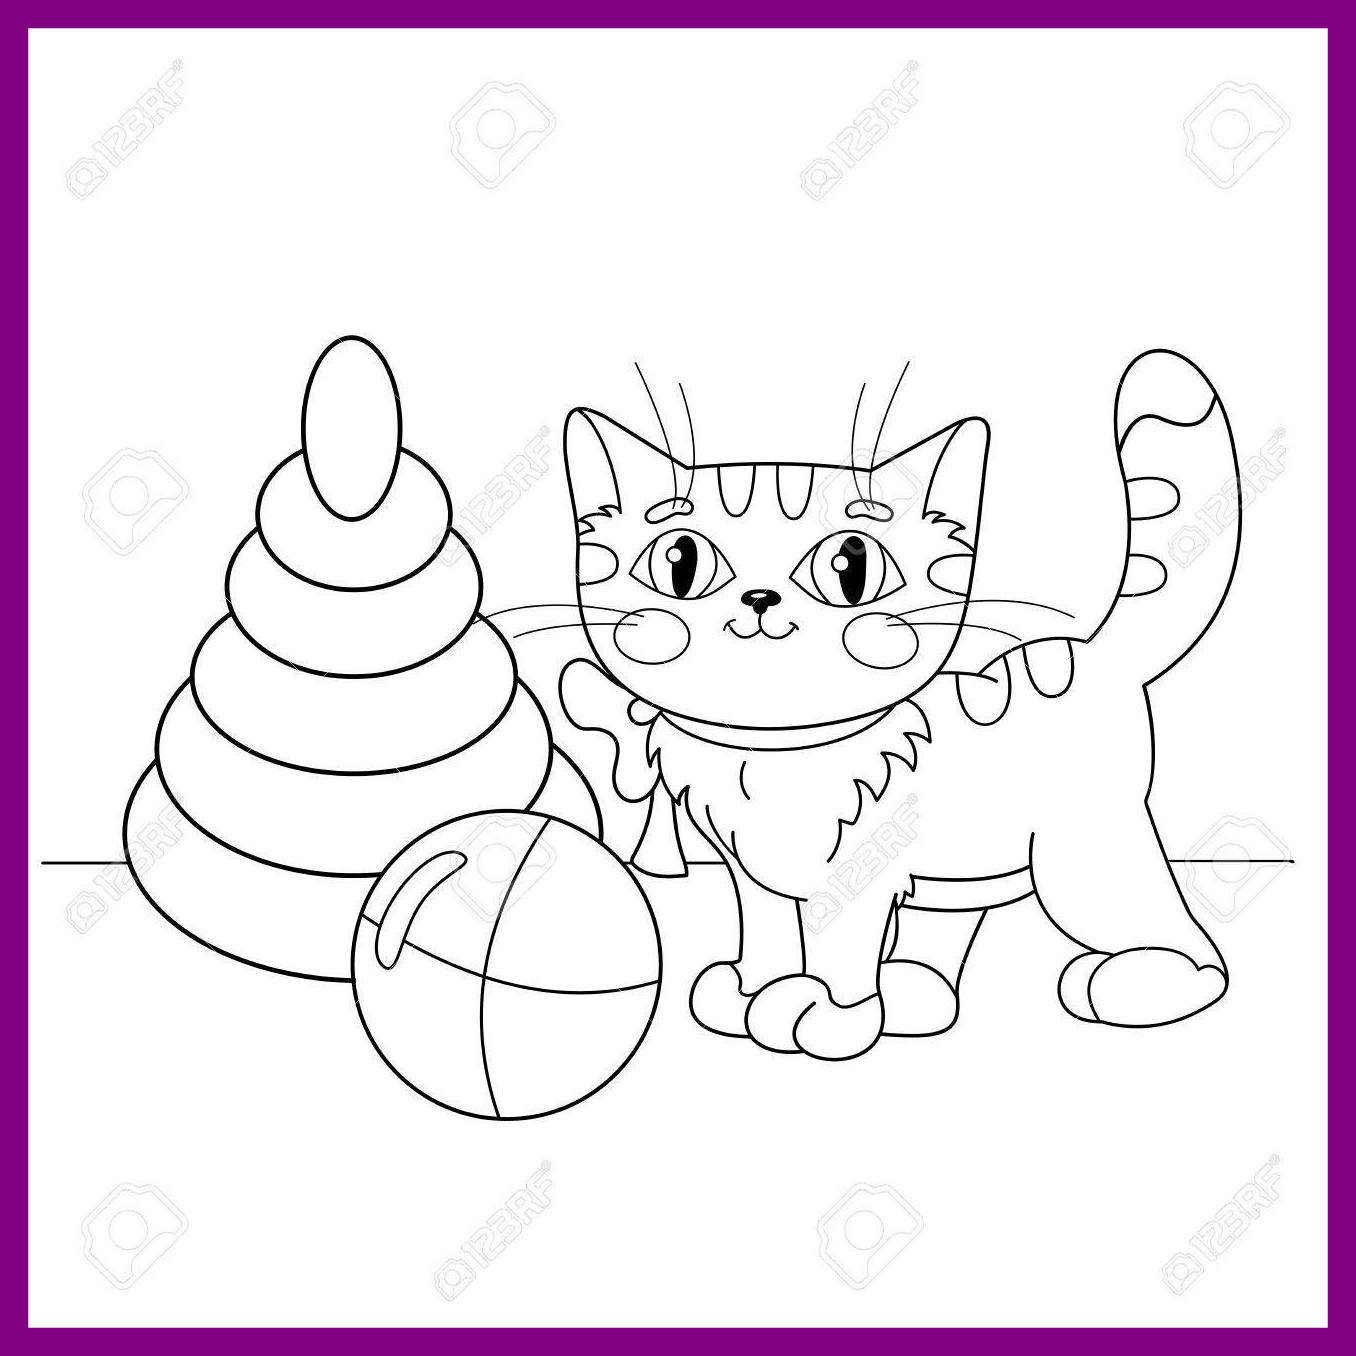 1356x1356 Incredible Calico Cat Coloring Pages For Cartoon Ideas And Styles